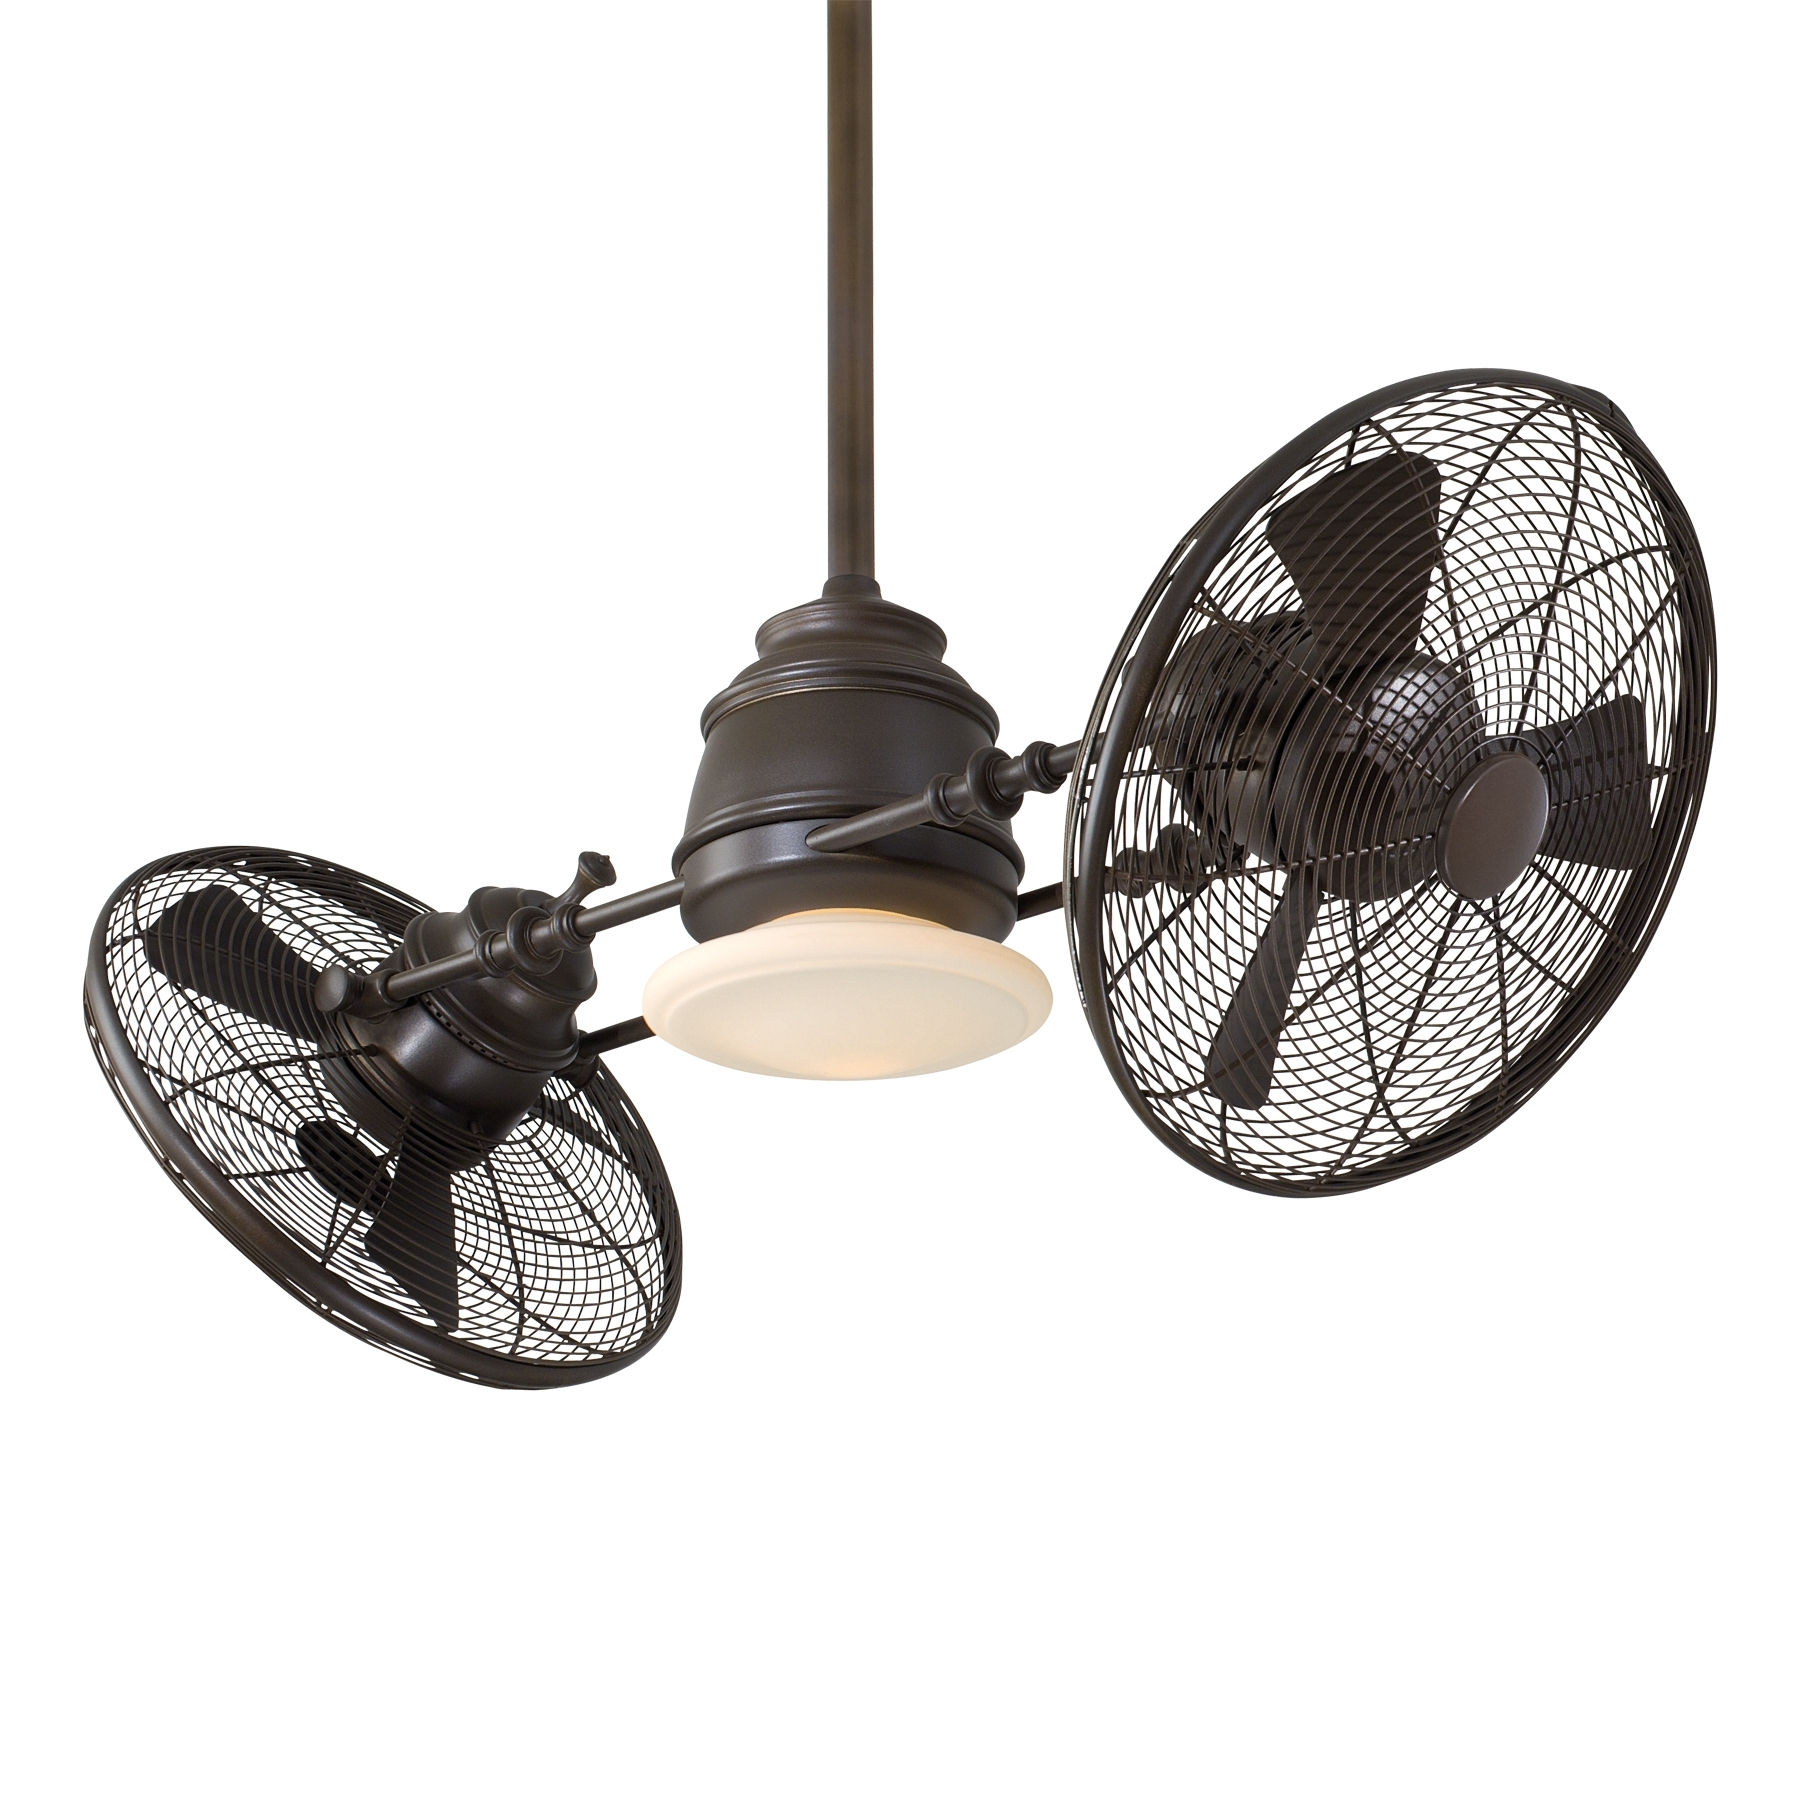 Ceiling Fans : Ceiling Fans Online Lantern Fan Chandelier Combo With Fashionable Vintage Outdoor Ceiling Lights (View 10 of 20)